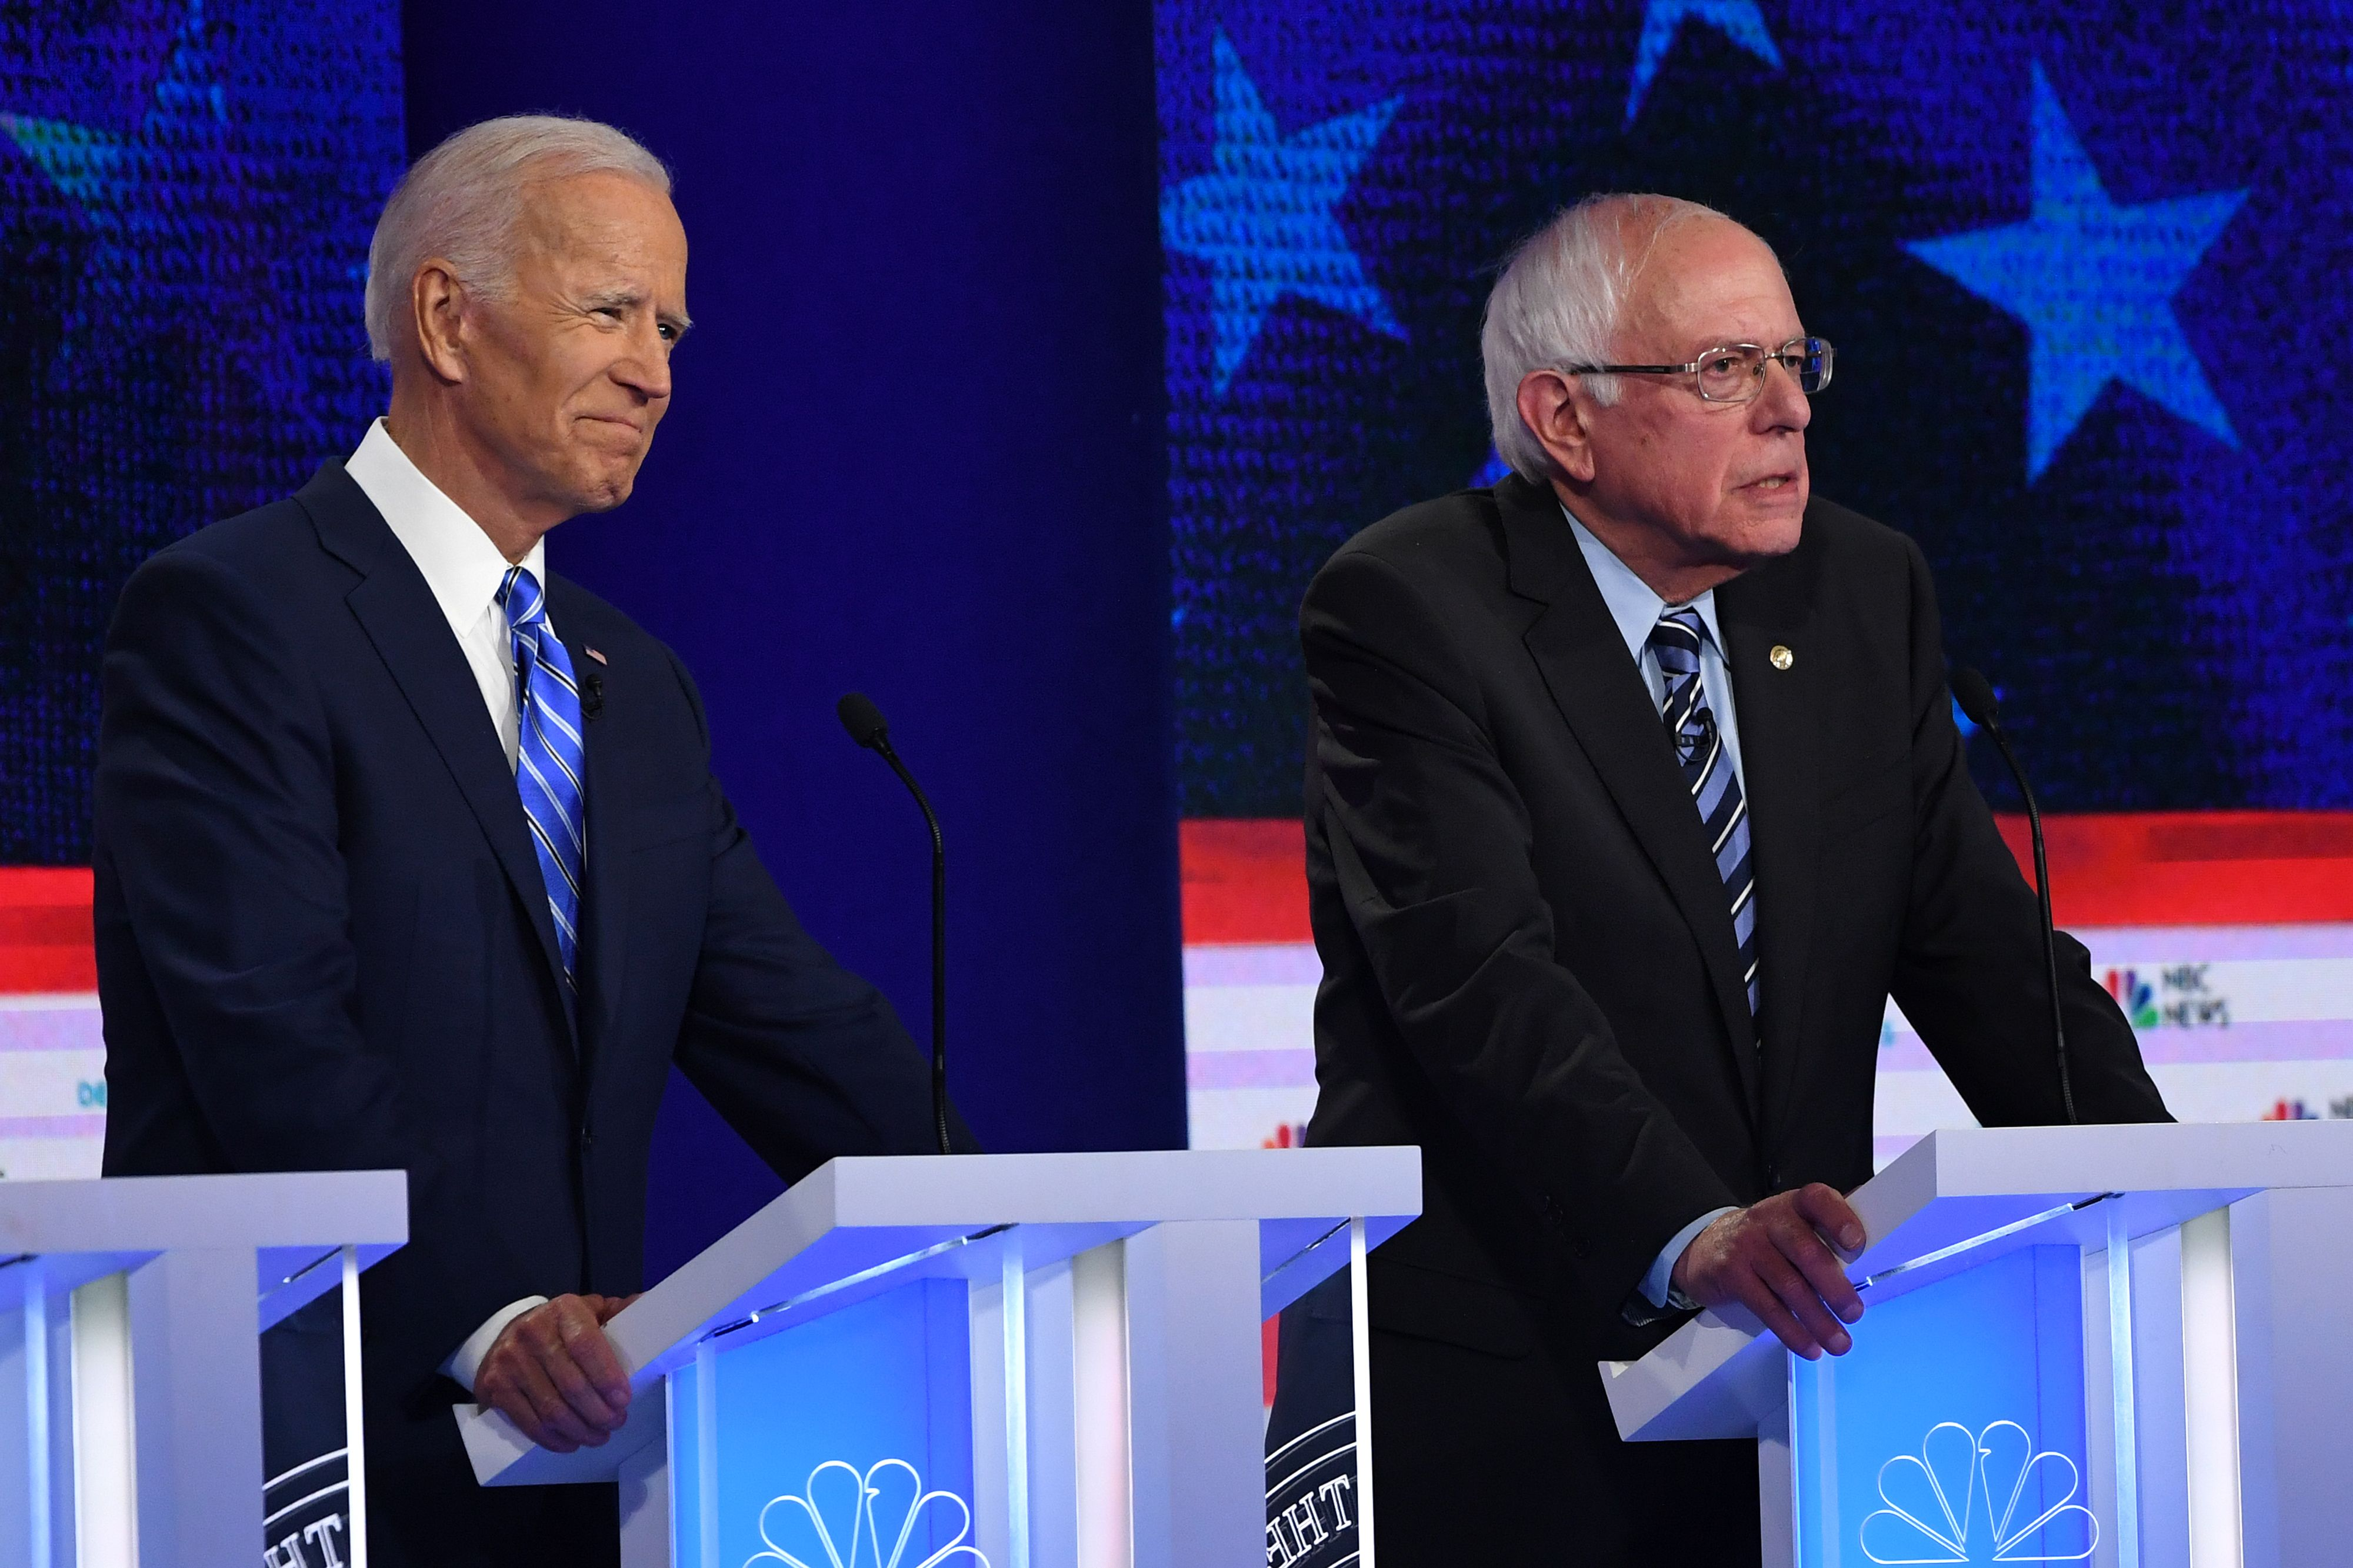 Democratic presidential hopefuls (fromL) former US Vice President Joseph R. Biden Jr. and US Senator for Vermont Bernie Sanders participate in the second Democratic primary debate of the 2020 presidential campaign season hosted by NBC News at the Adrienne Arsht Center for the Performing Arts in Miami, Florida, June 27, 2019.